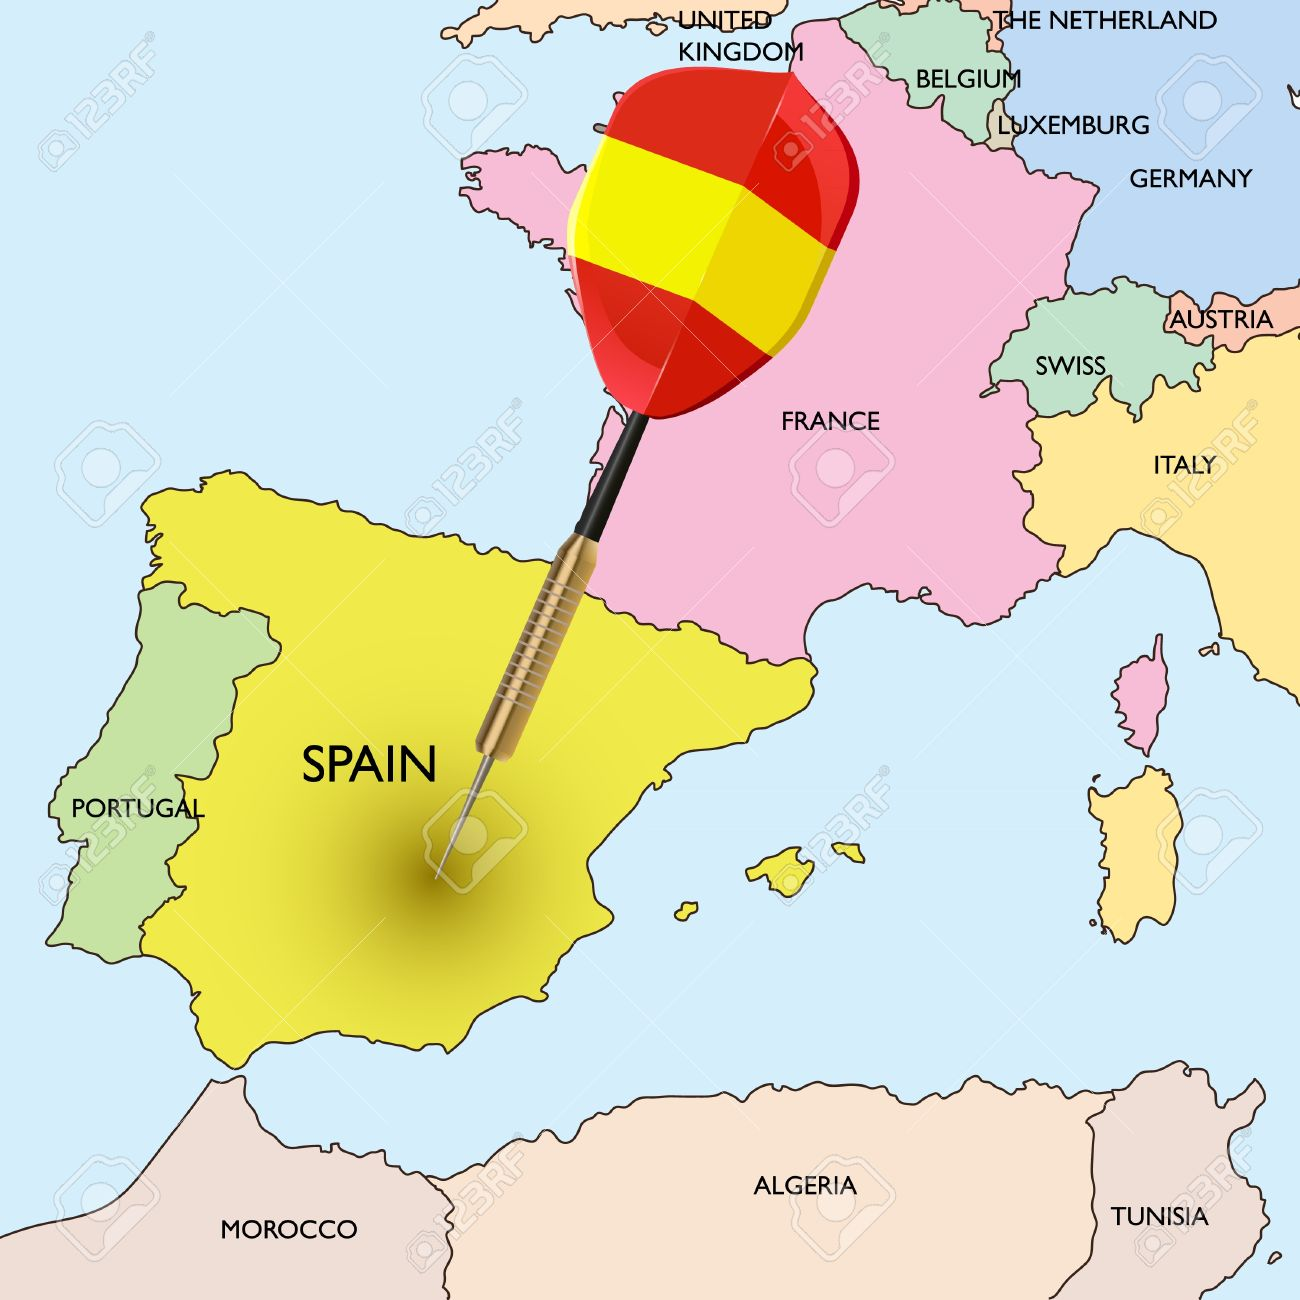 Map Of Spain And Europe.Target Spain Dart Hitting In Spain On The Europe Map